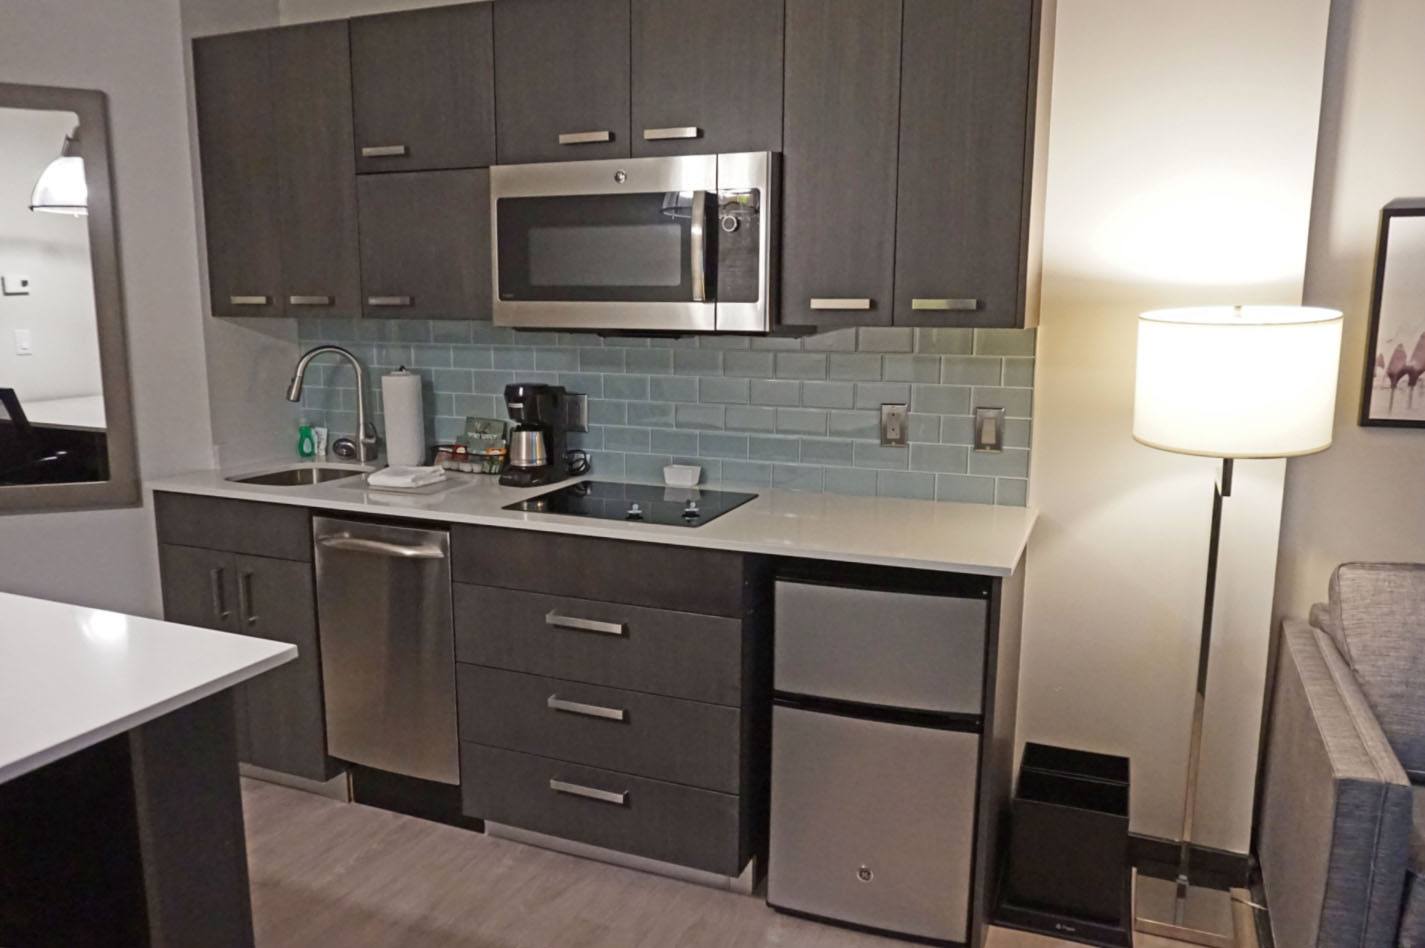 Hyatt House Jersey City offers home conveniences. How to visit New York on a budget.